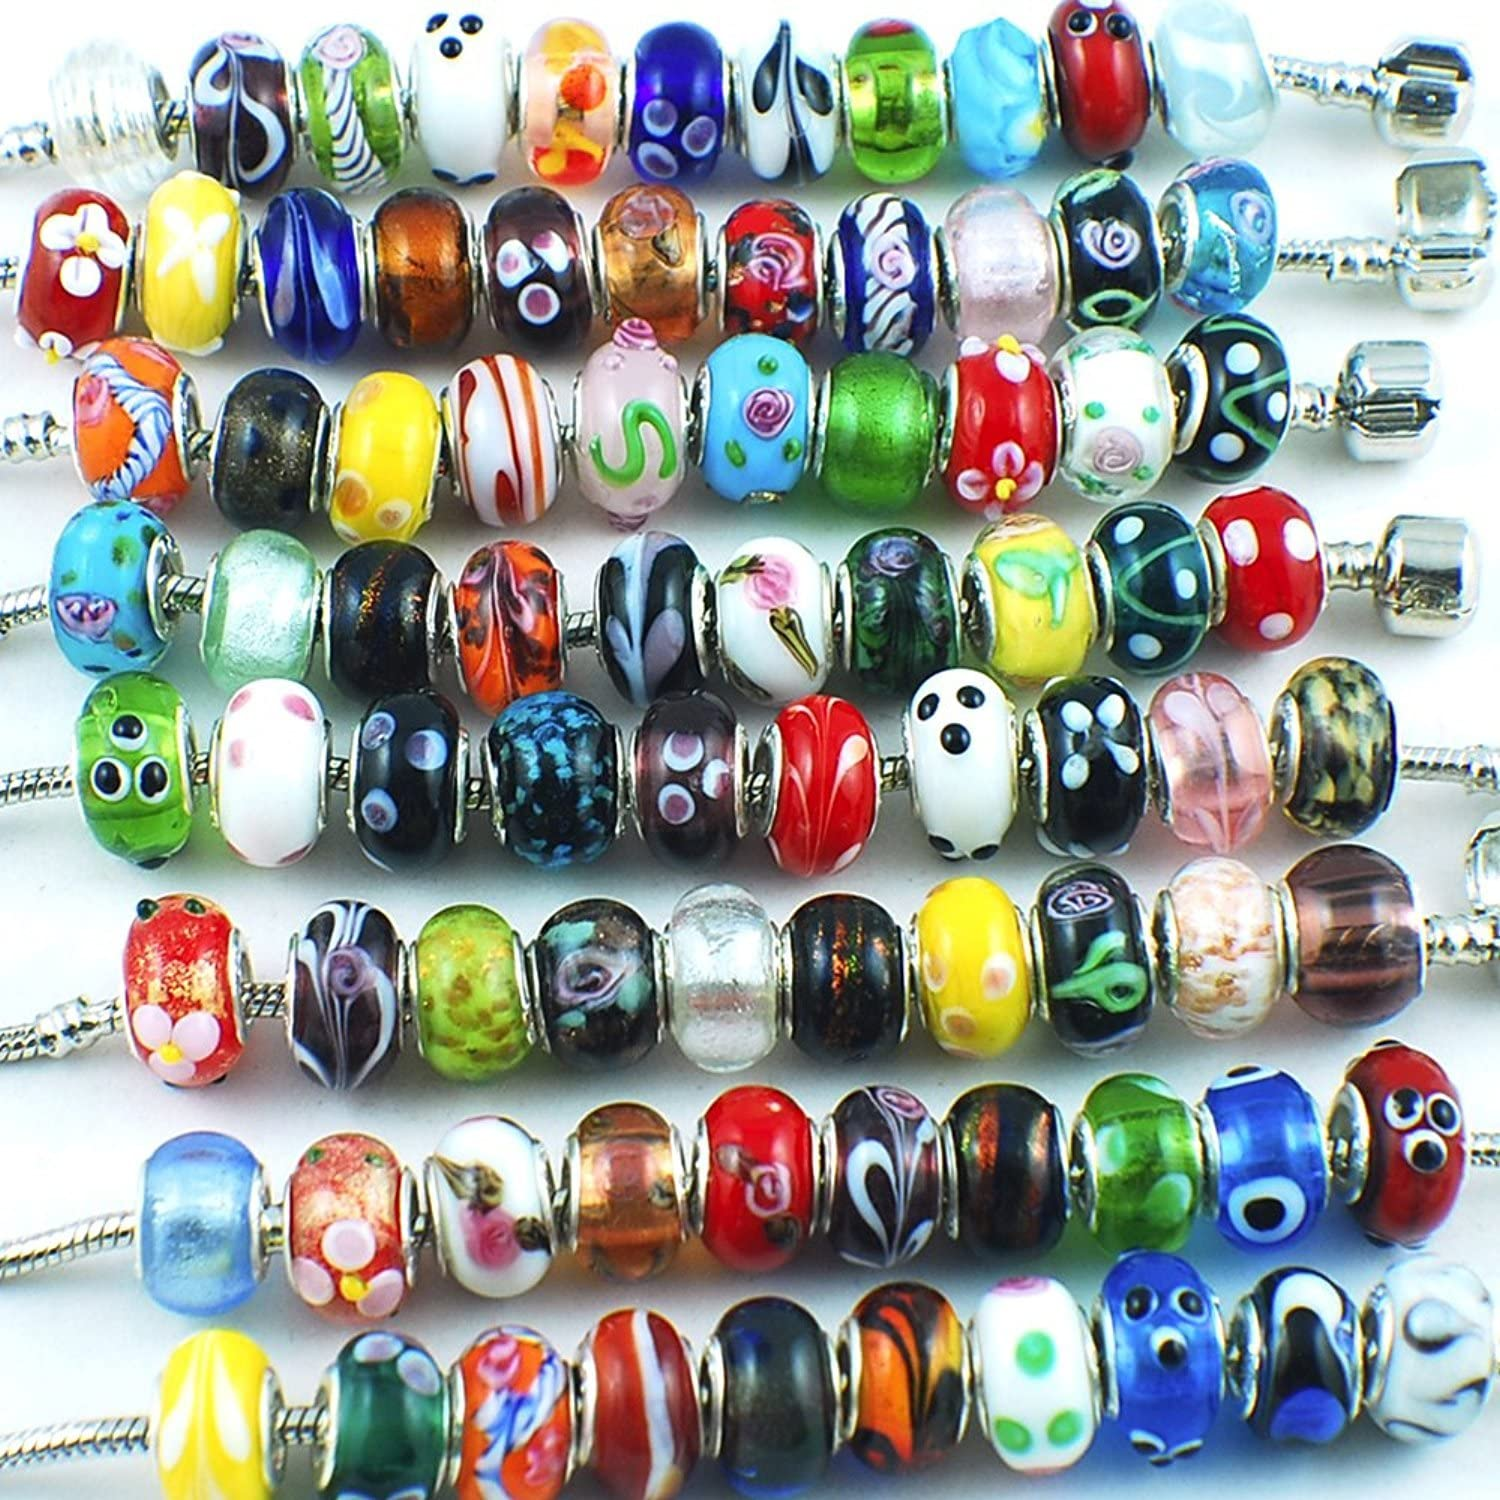 RUBYCA Silver Color Murano Glass Beads Fit European Charm Bracelet Spacer by eART 50pcs Mix